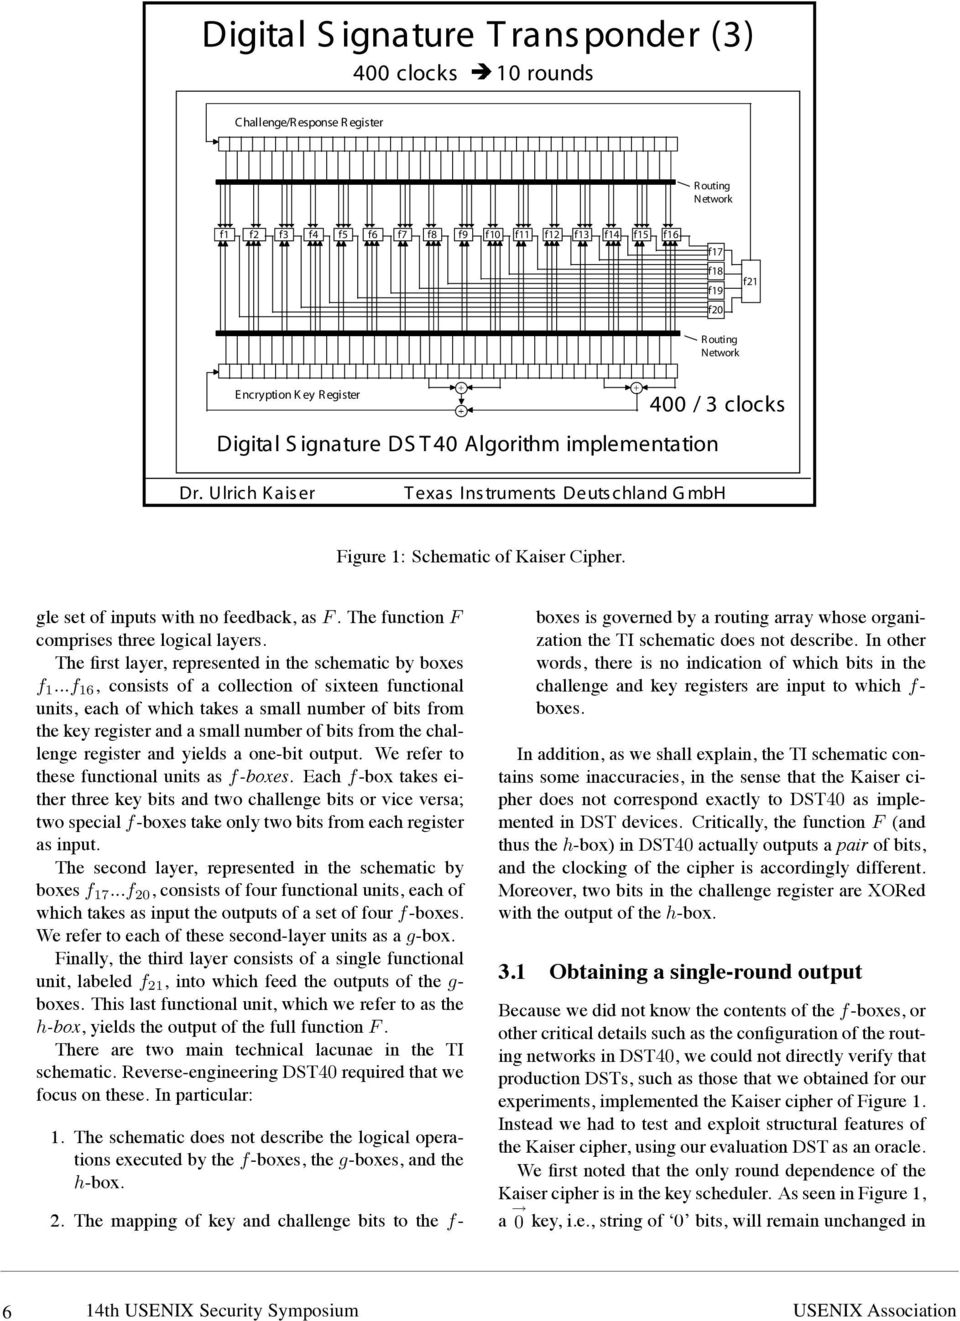 gle set of inputs with no feedback, as F. The function F comprises three logical layers. The first layer, represented in the schematic by boxes f 1.